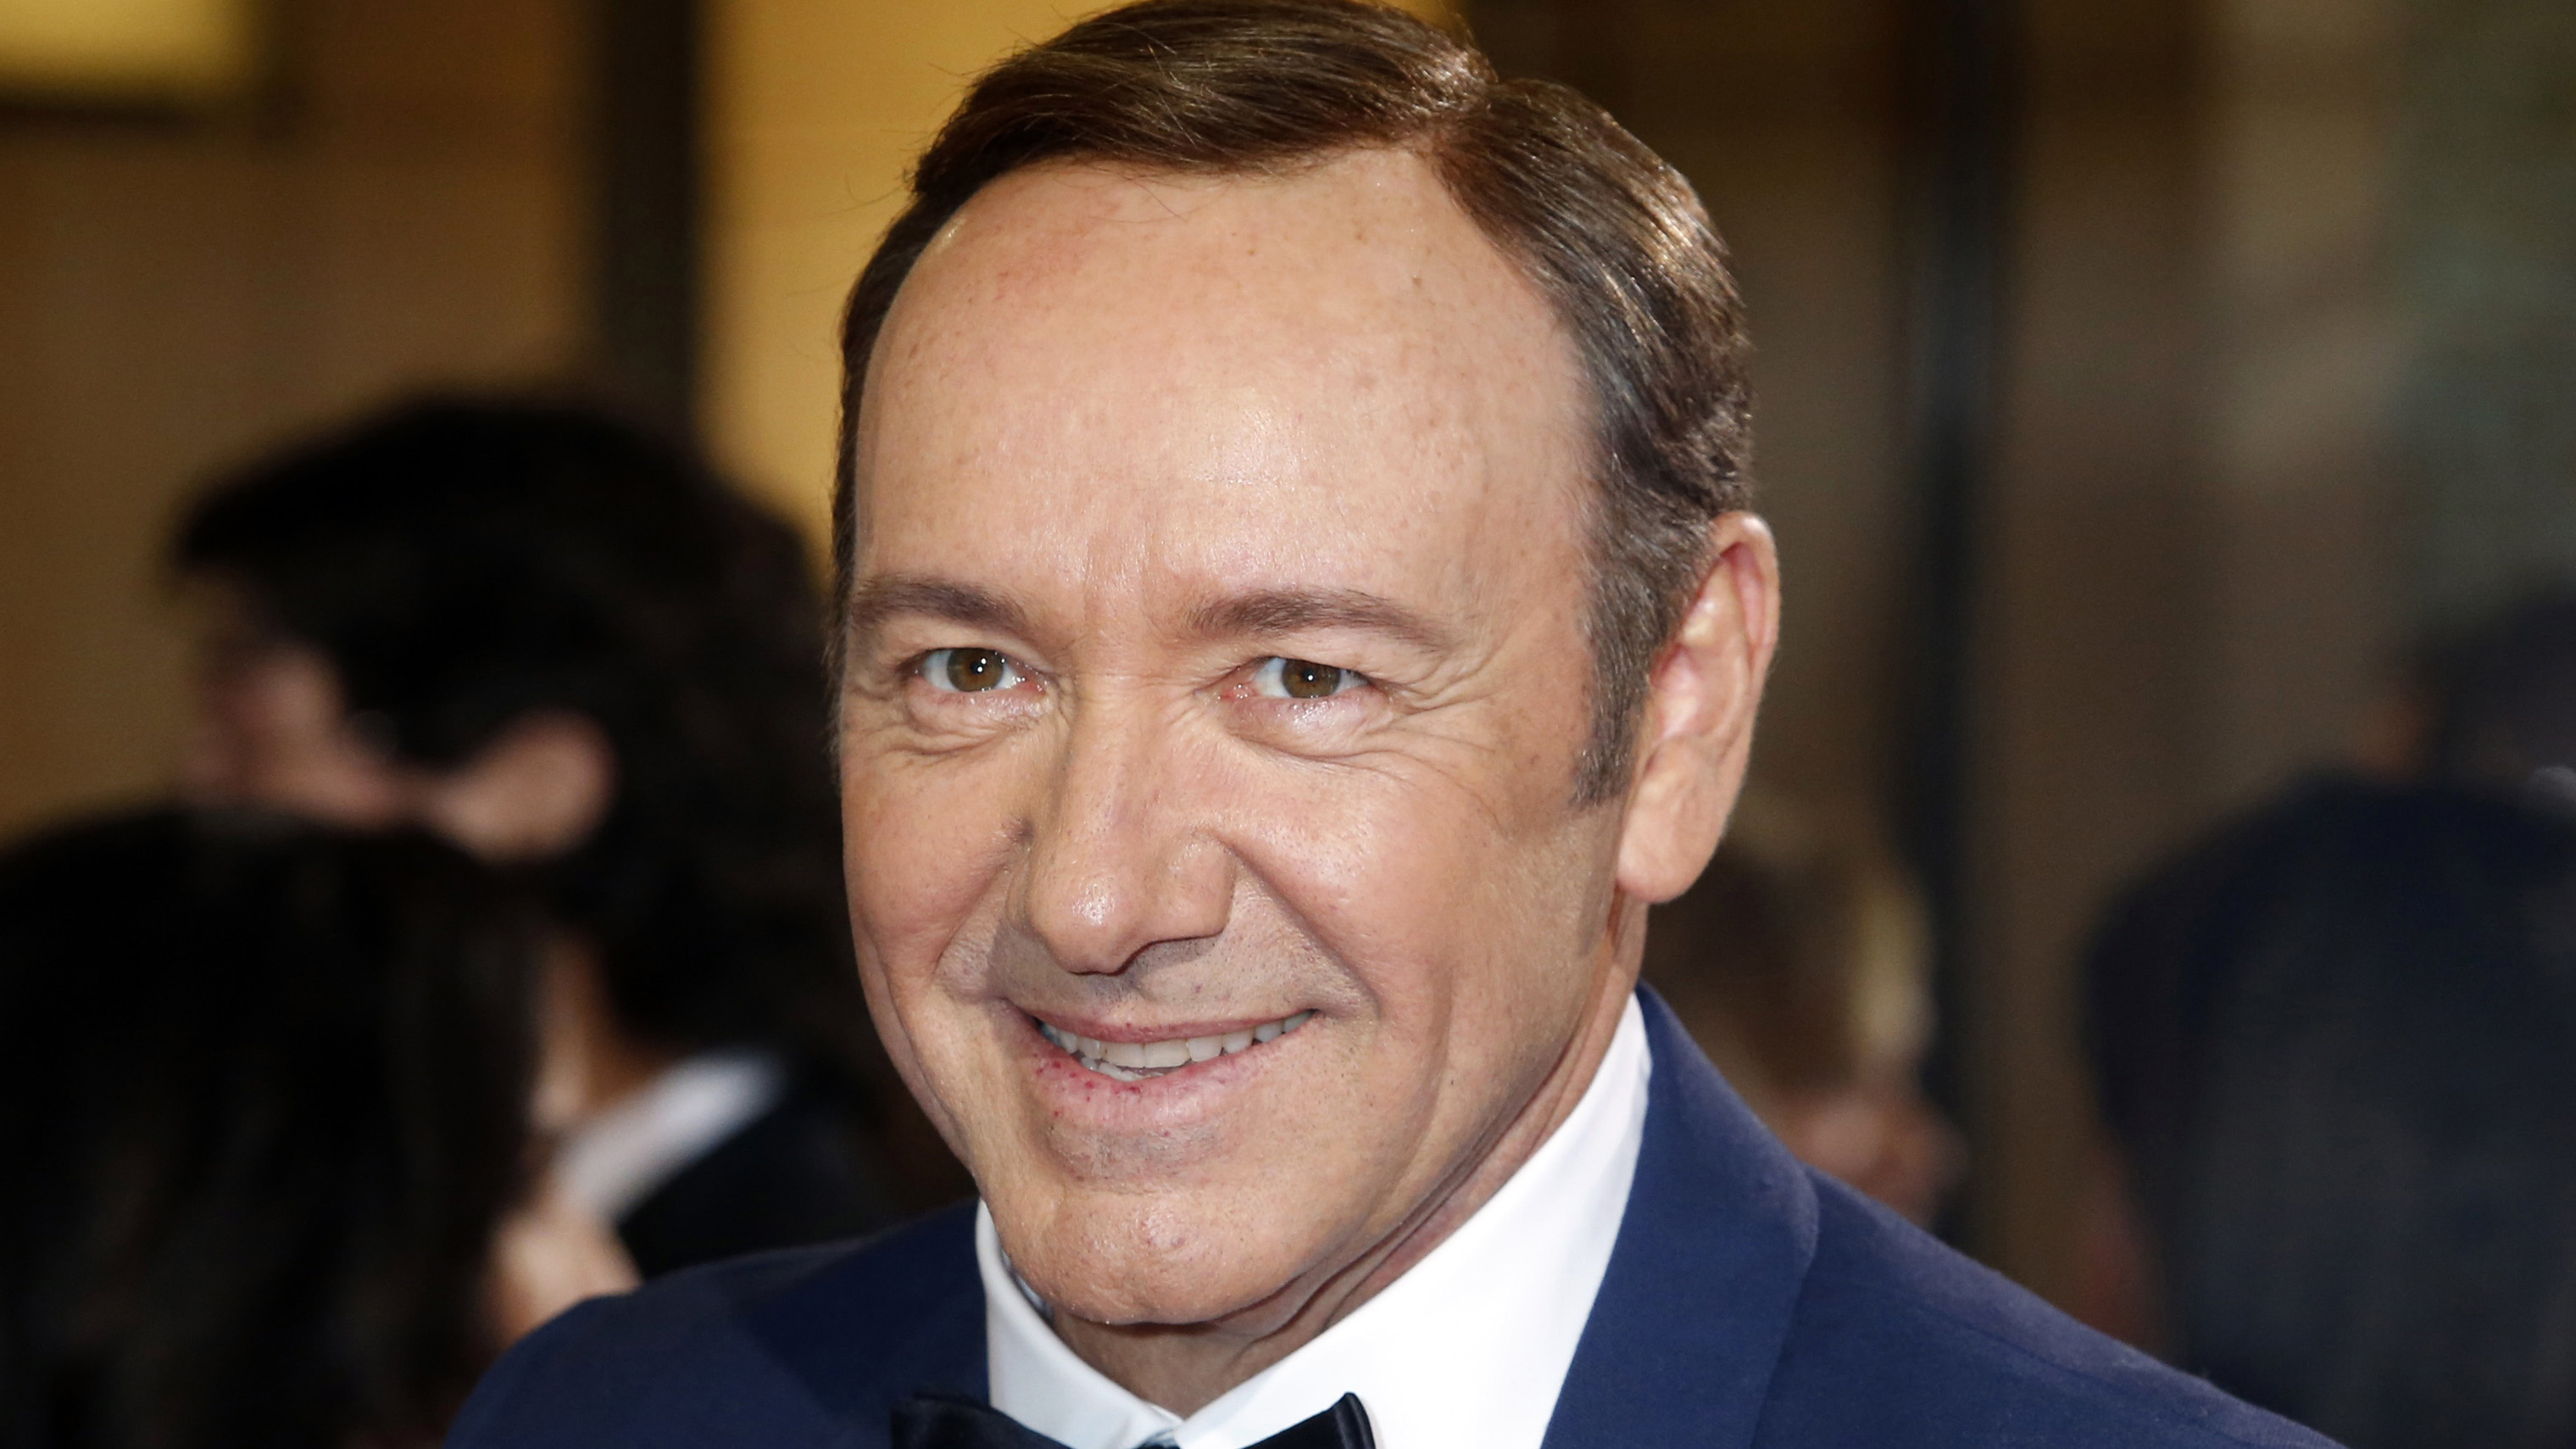 Actor Kevin Spacey and WISeKey CEO Carlos Moreira on efforts to improve cyber security and protect information.